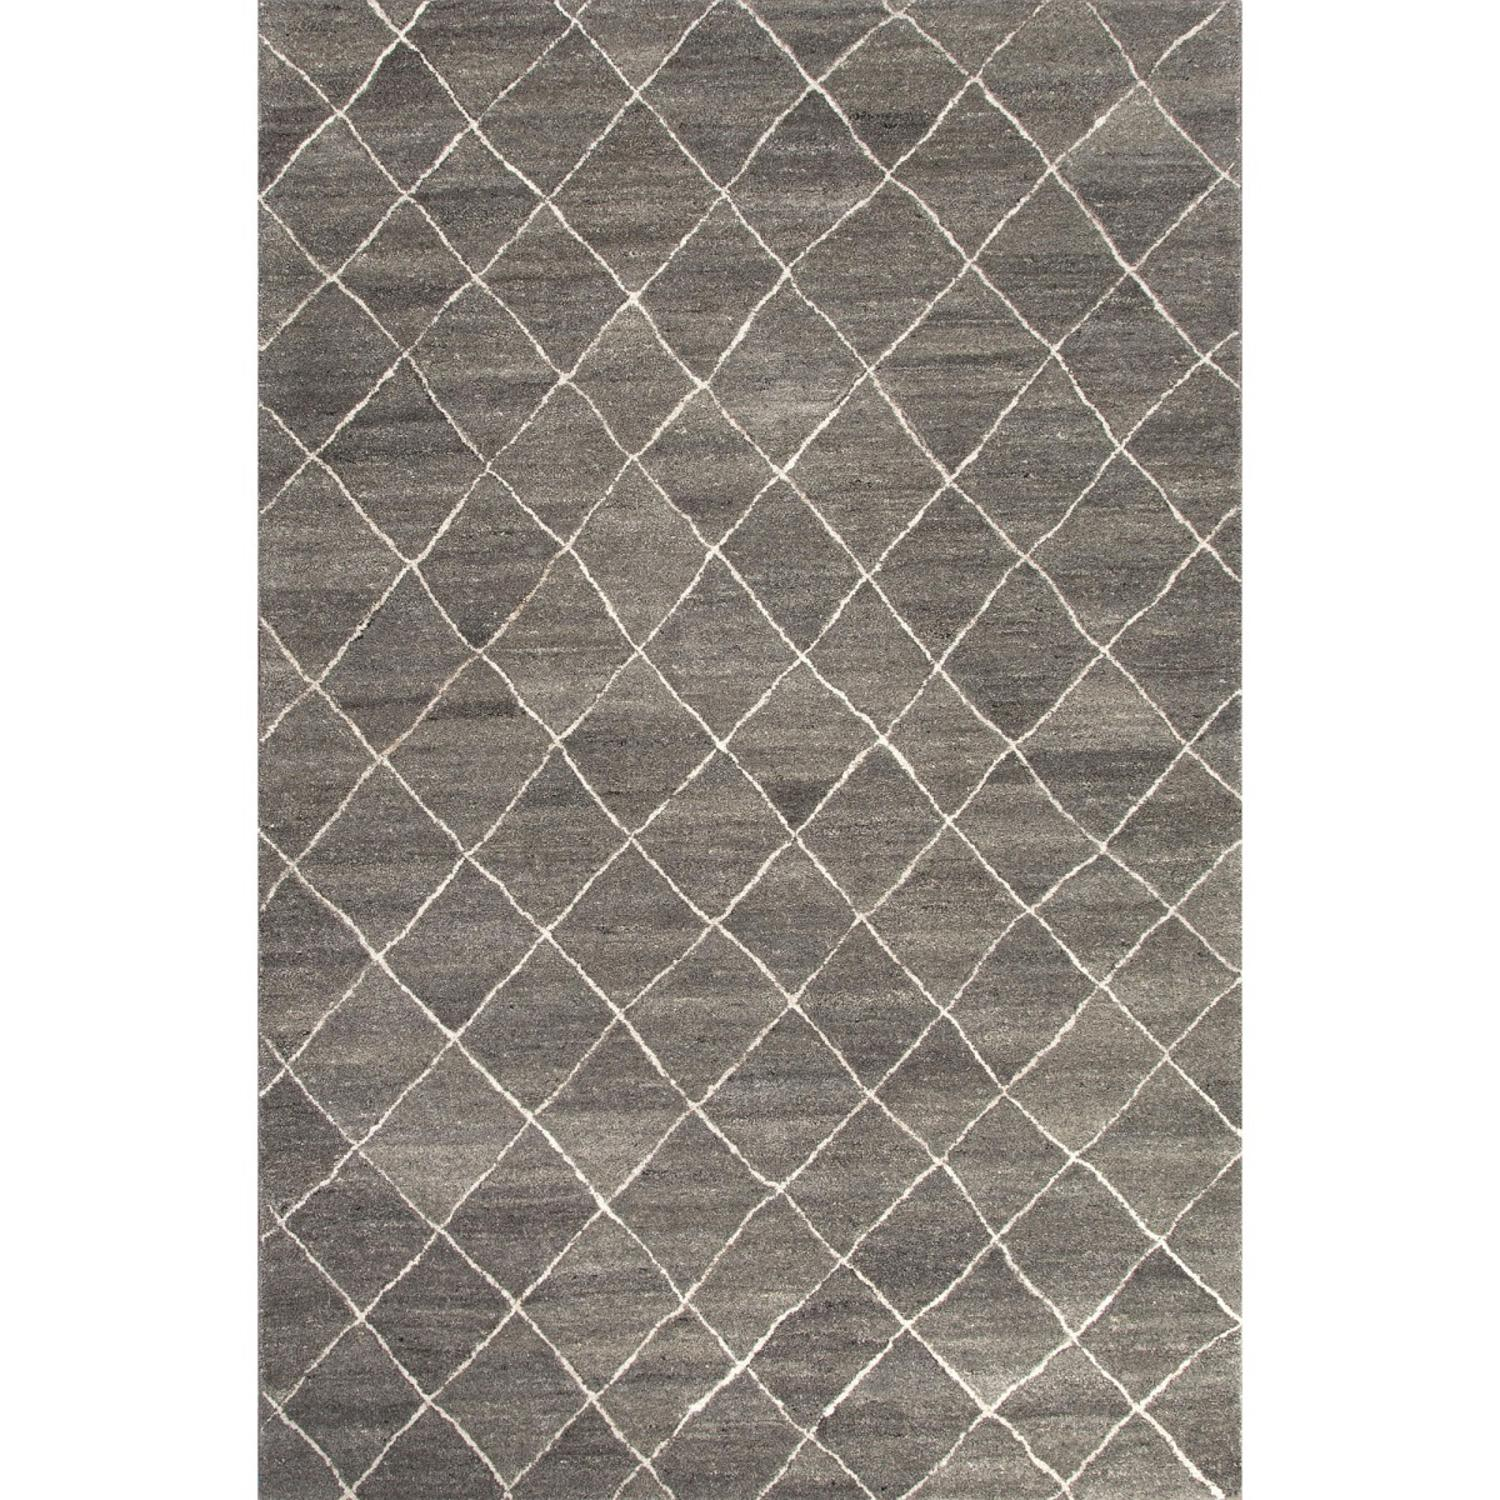 2' x 3' Crushed Stone Gray and Snow White Modern Gem Hand Tufted Wool Area Throw Rug